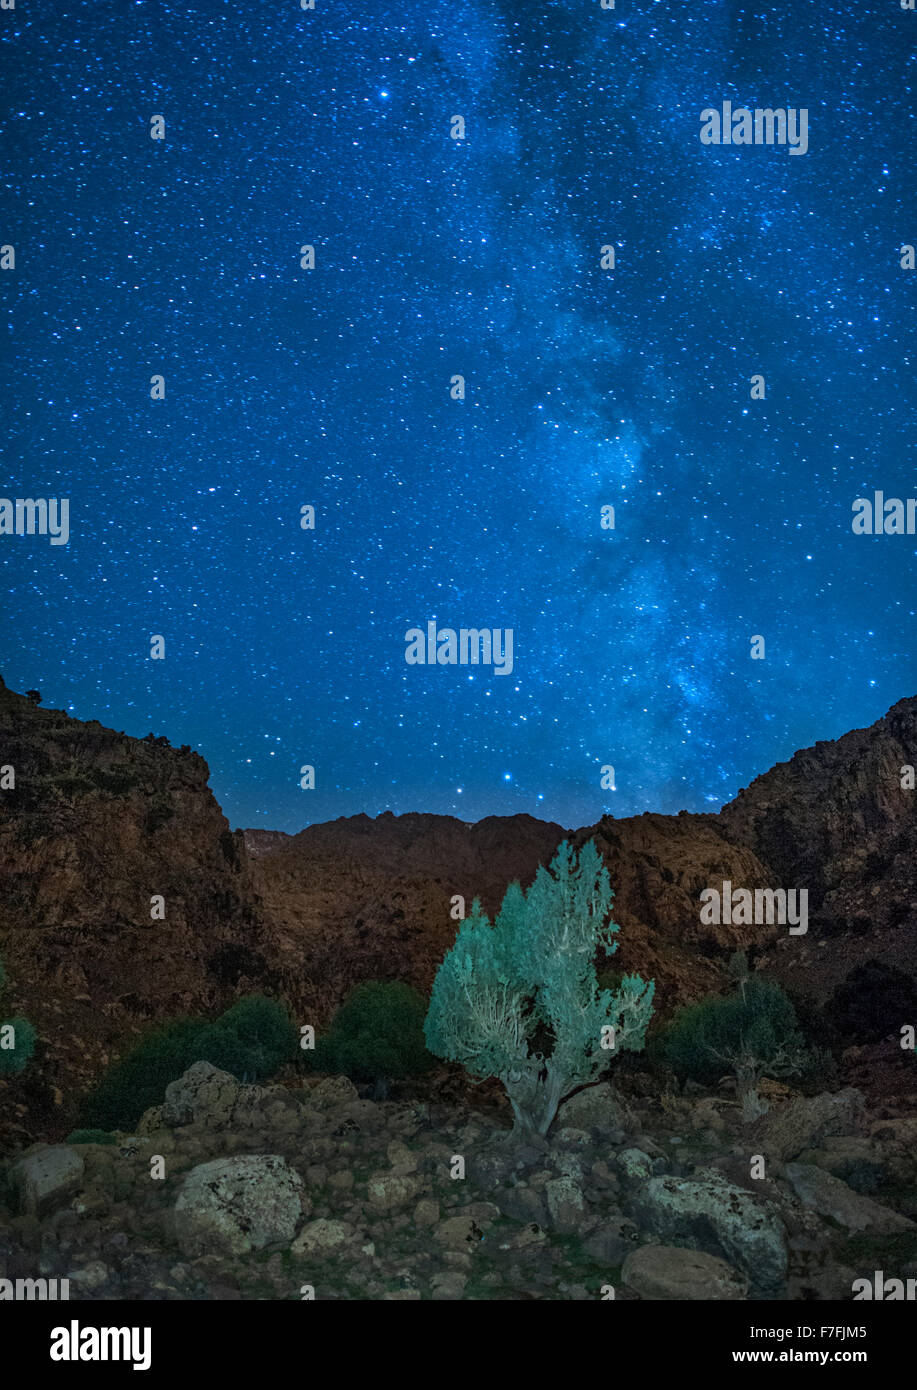 Night time view of the landscape in the Tamsoult region of the Toubkal National Park in the Atlas mountains in Morocco. - Stock Image